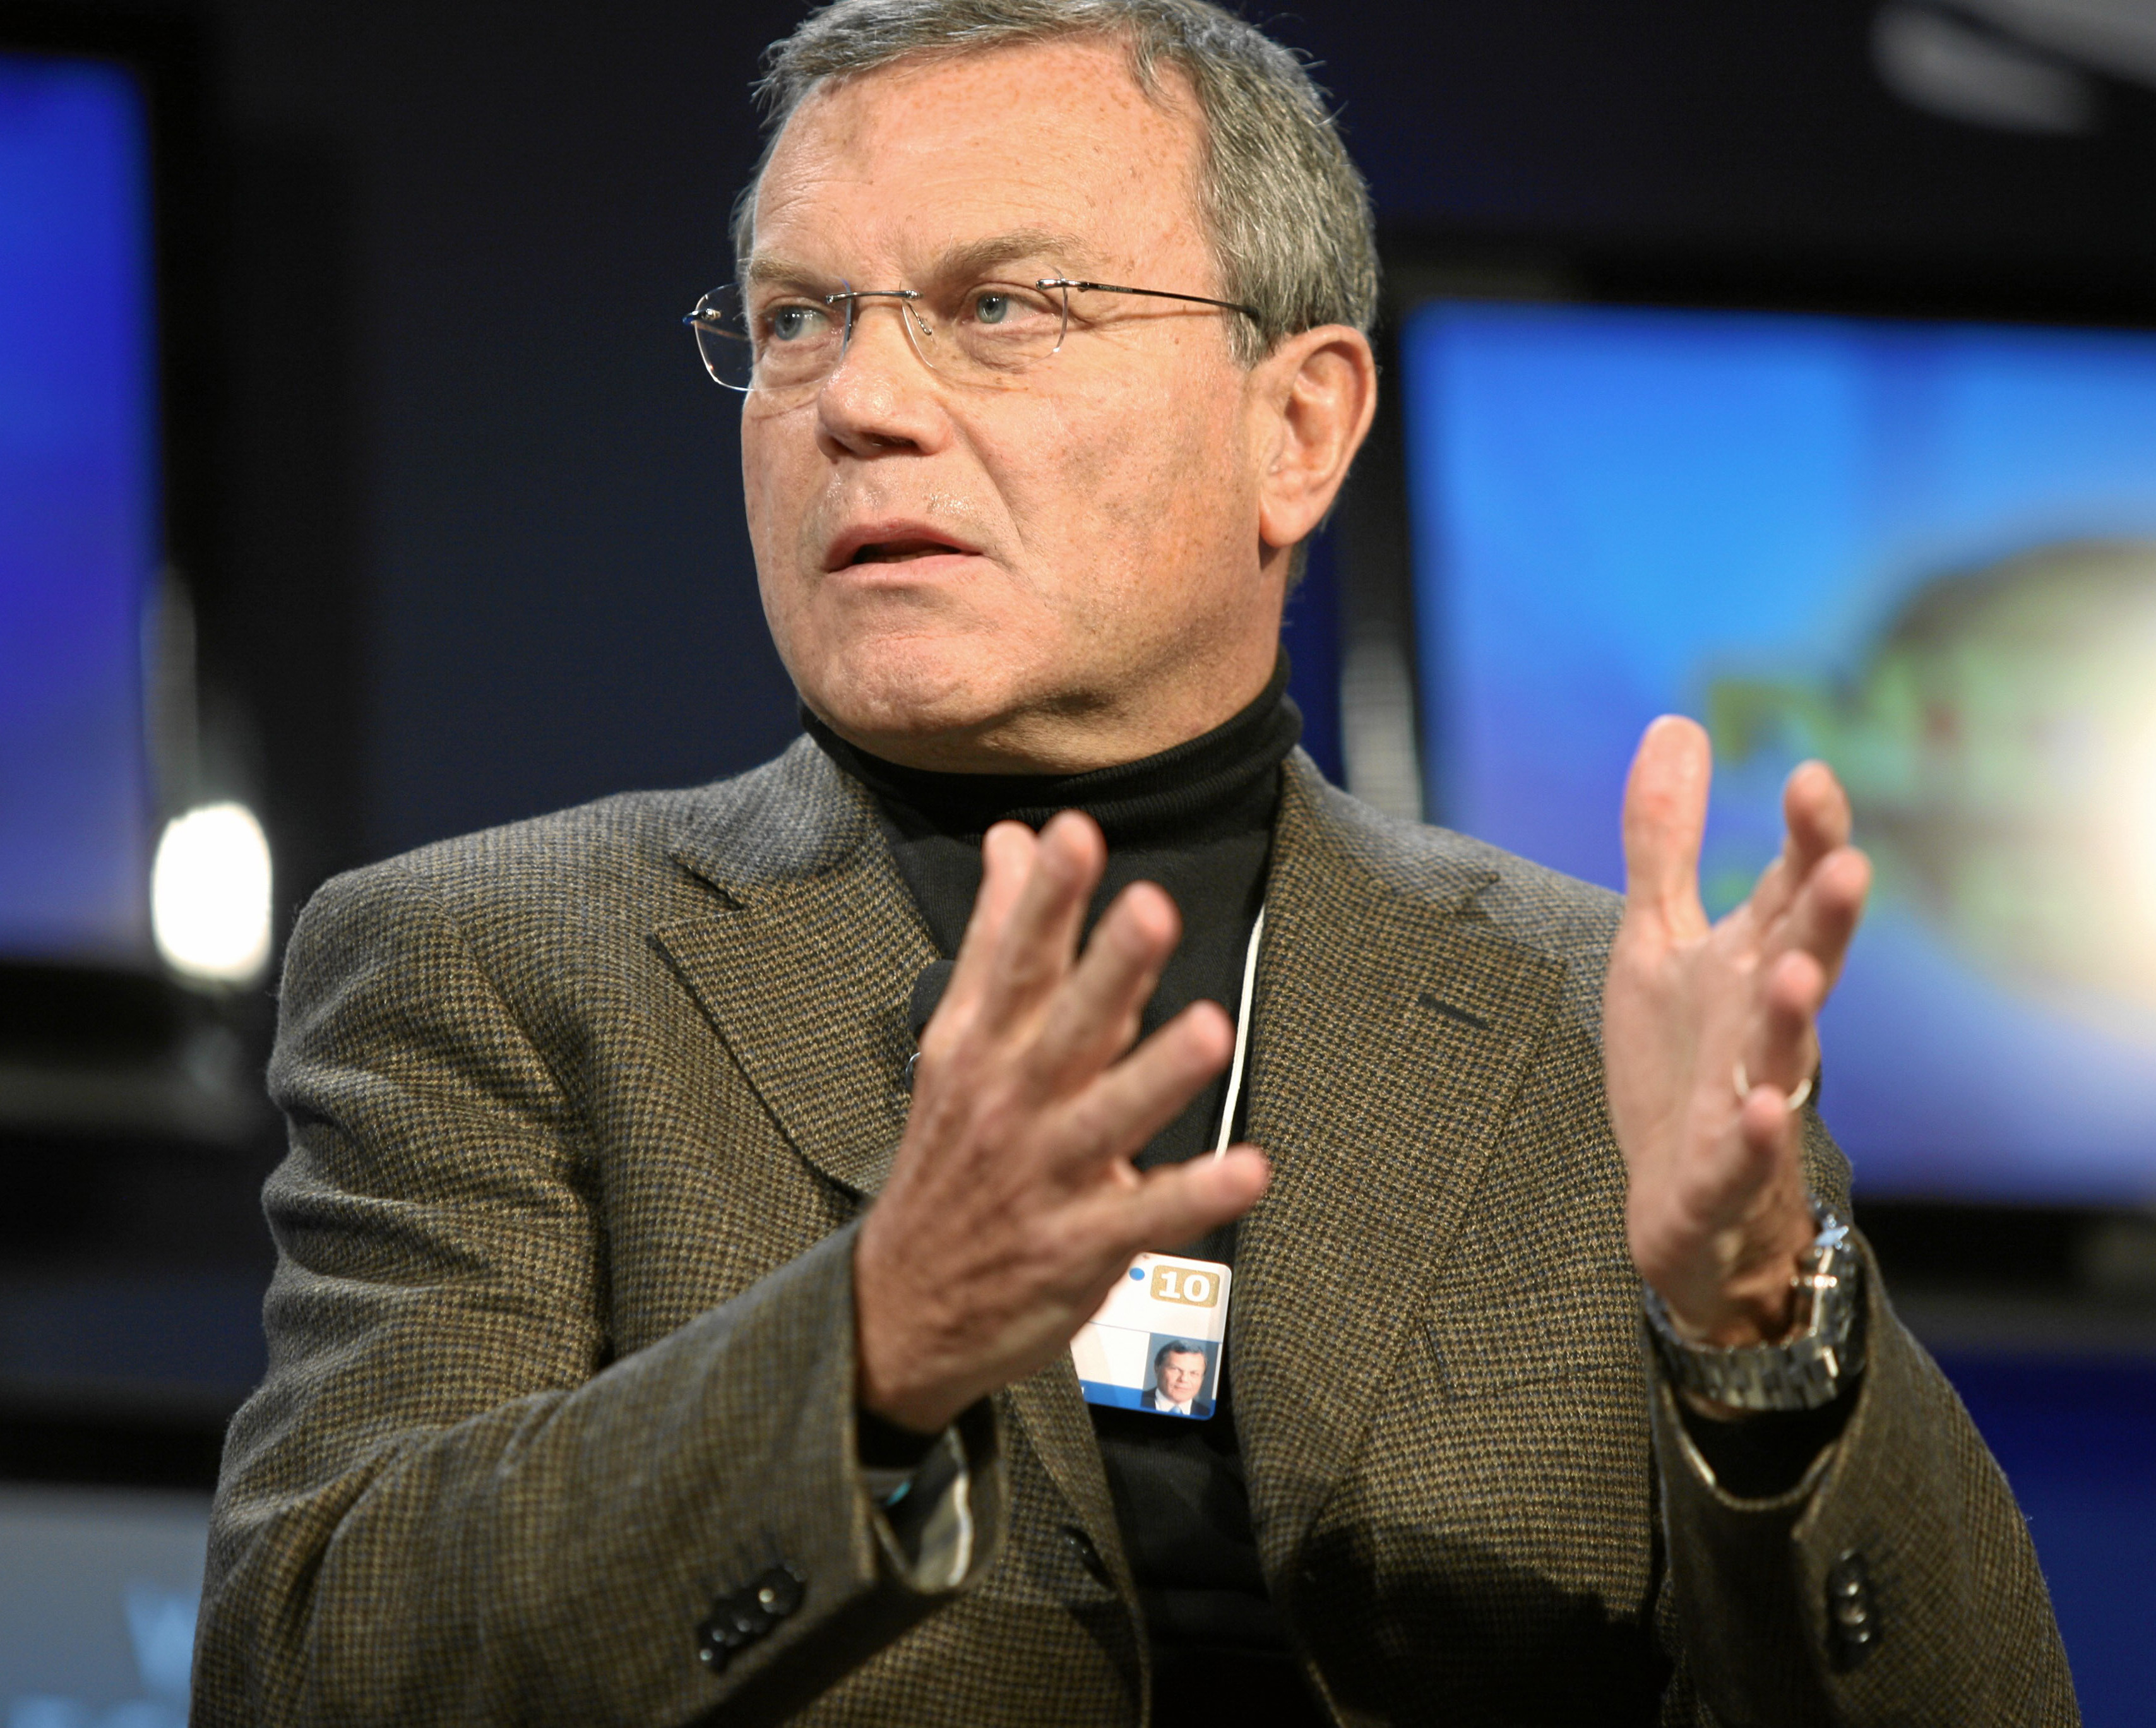 Martin Sorrell Martin Sorrell Wikipedia the free encyclopedia